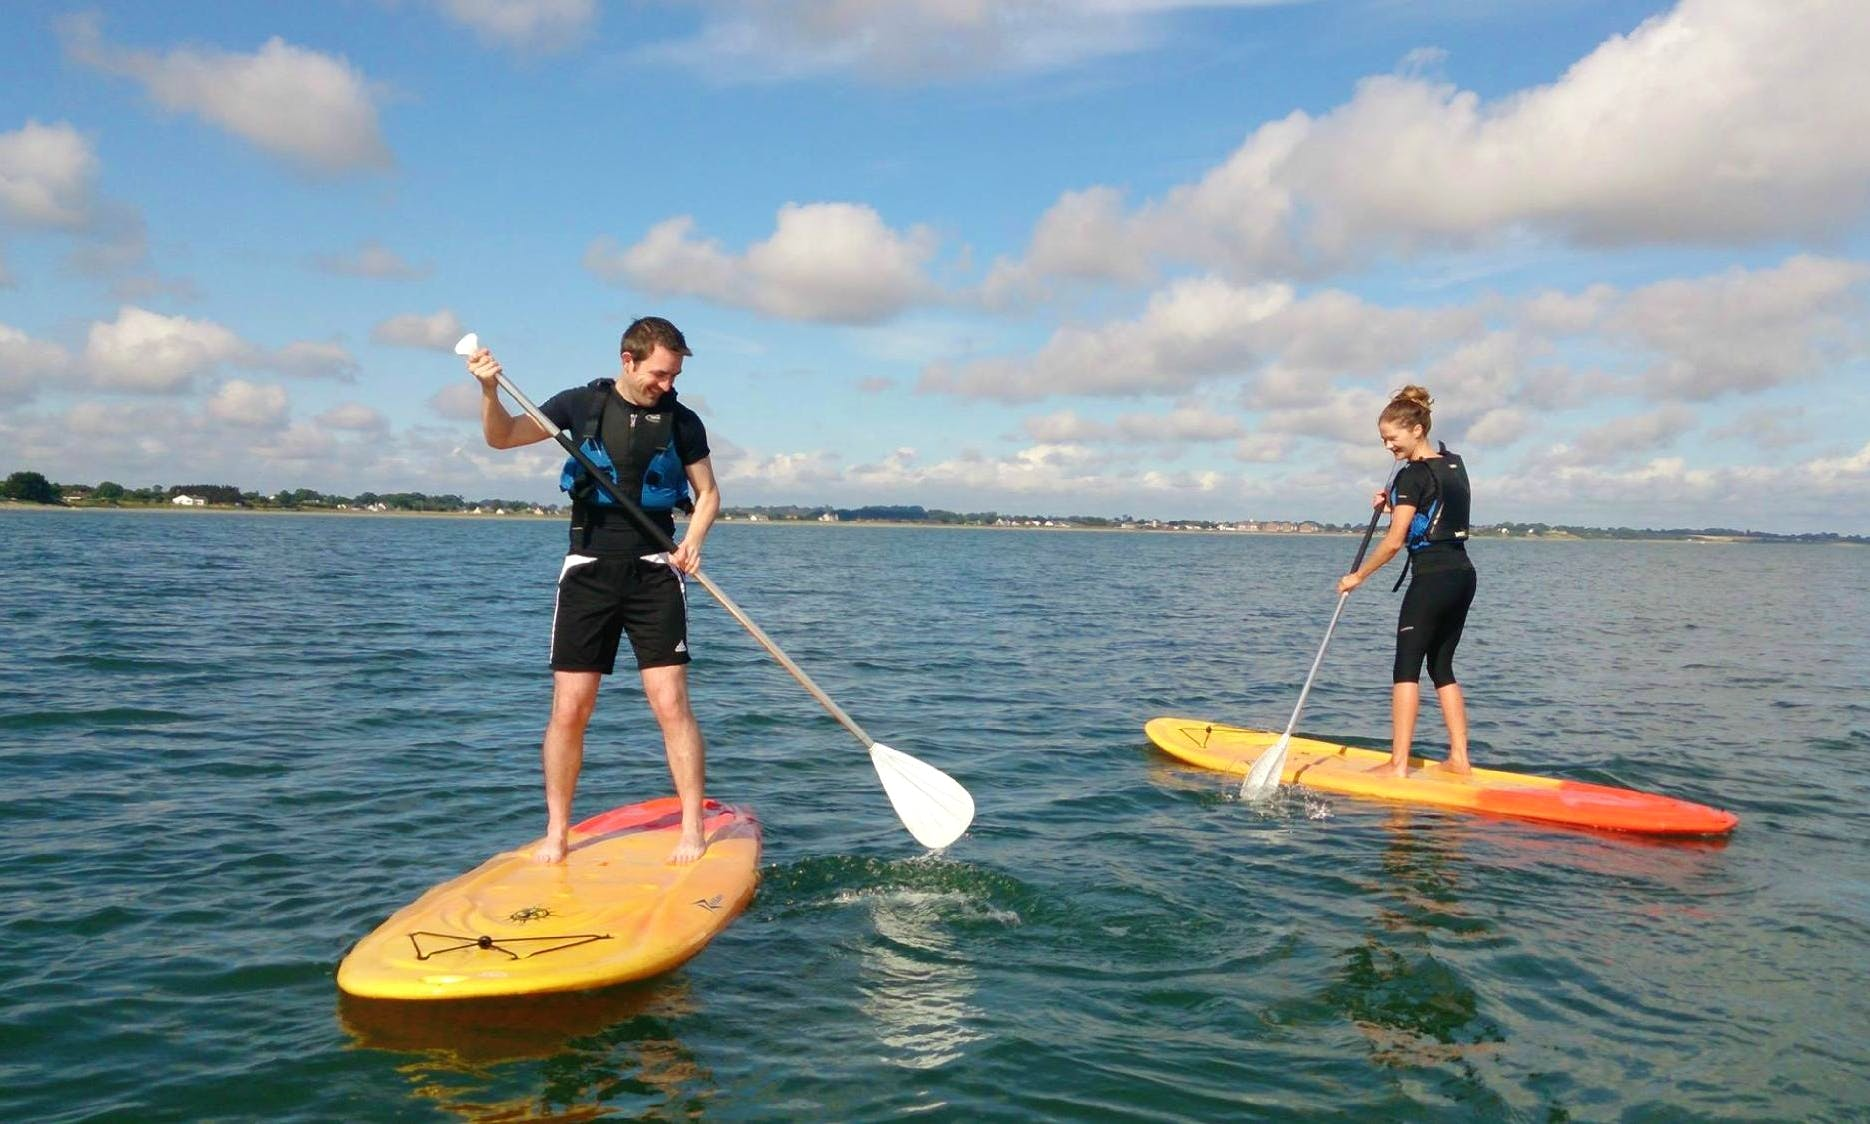 Stand Up Paddleboarding - Great Fun for All Ages in Geashill, Ireland